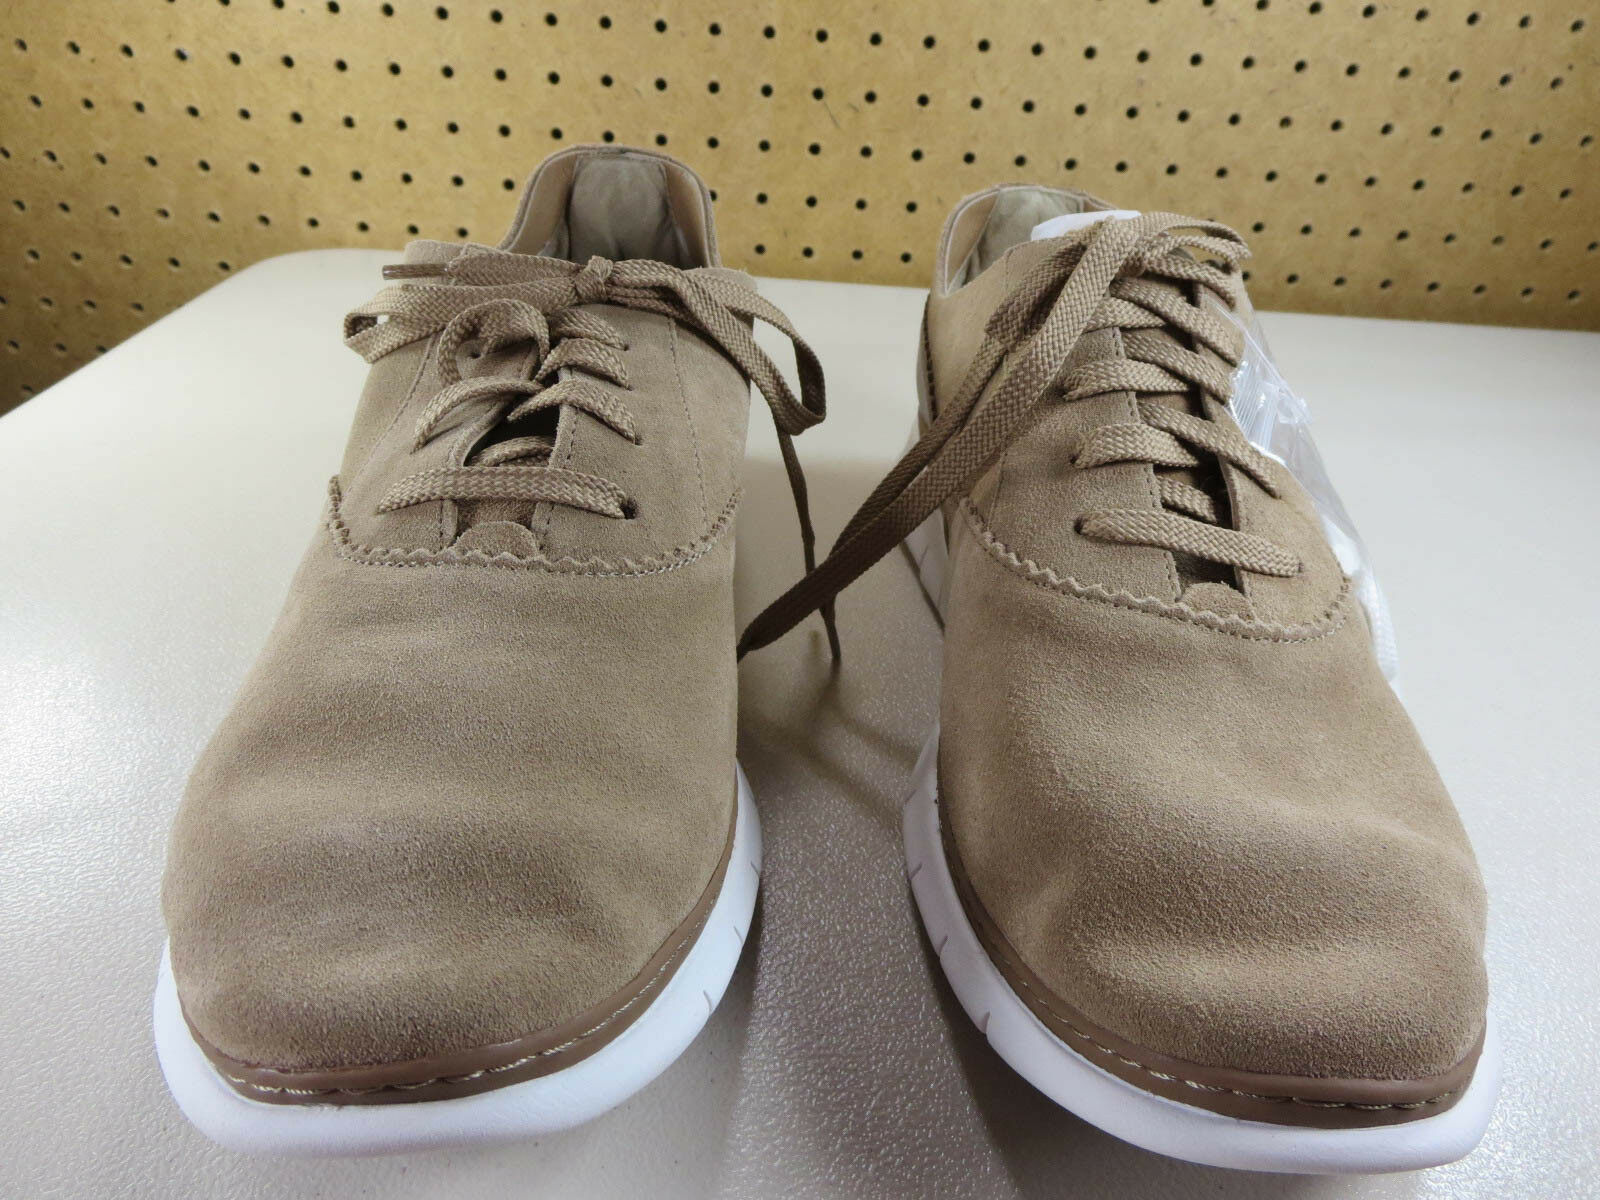 NEU Vionic Damenss tan Taylor suede Orthotic oxford sneakers 11 M NWOB